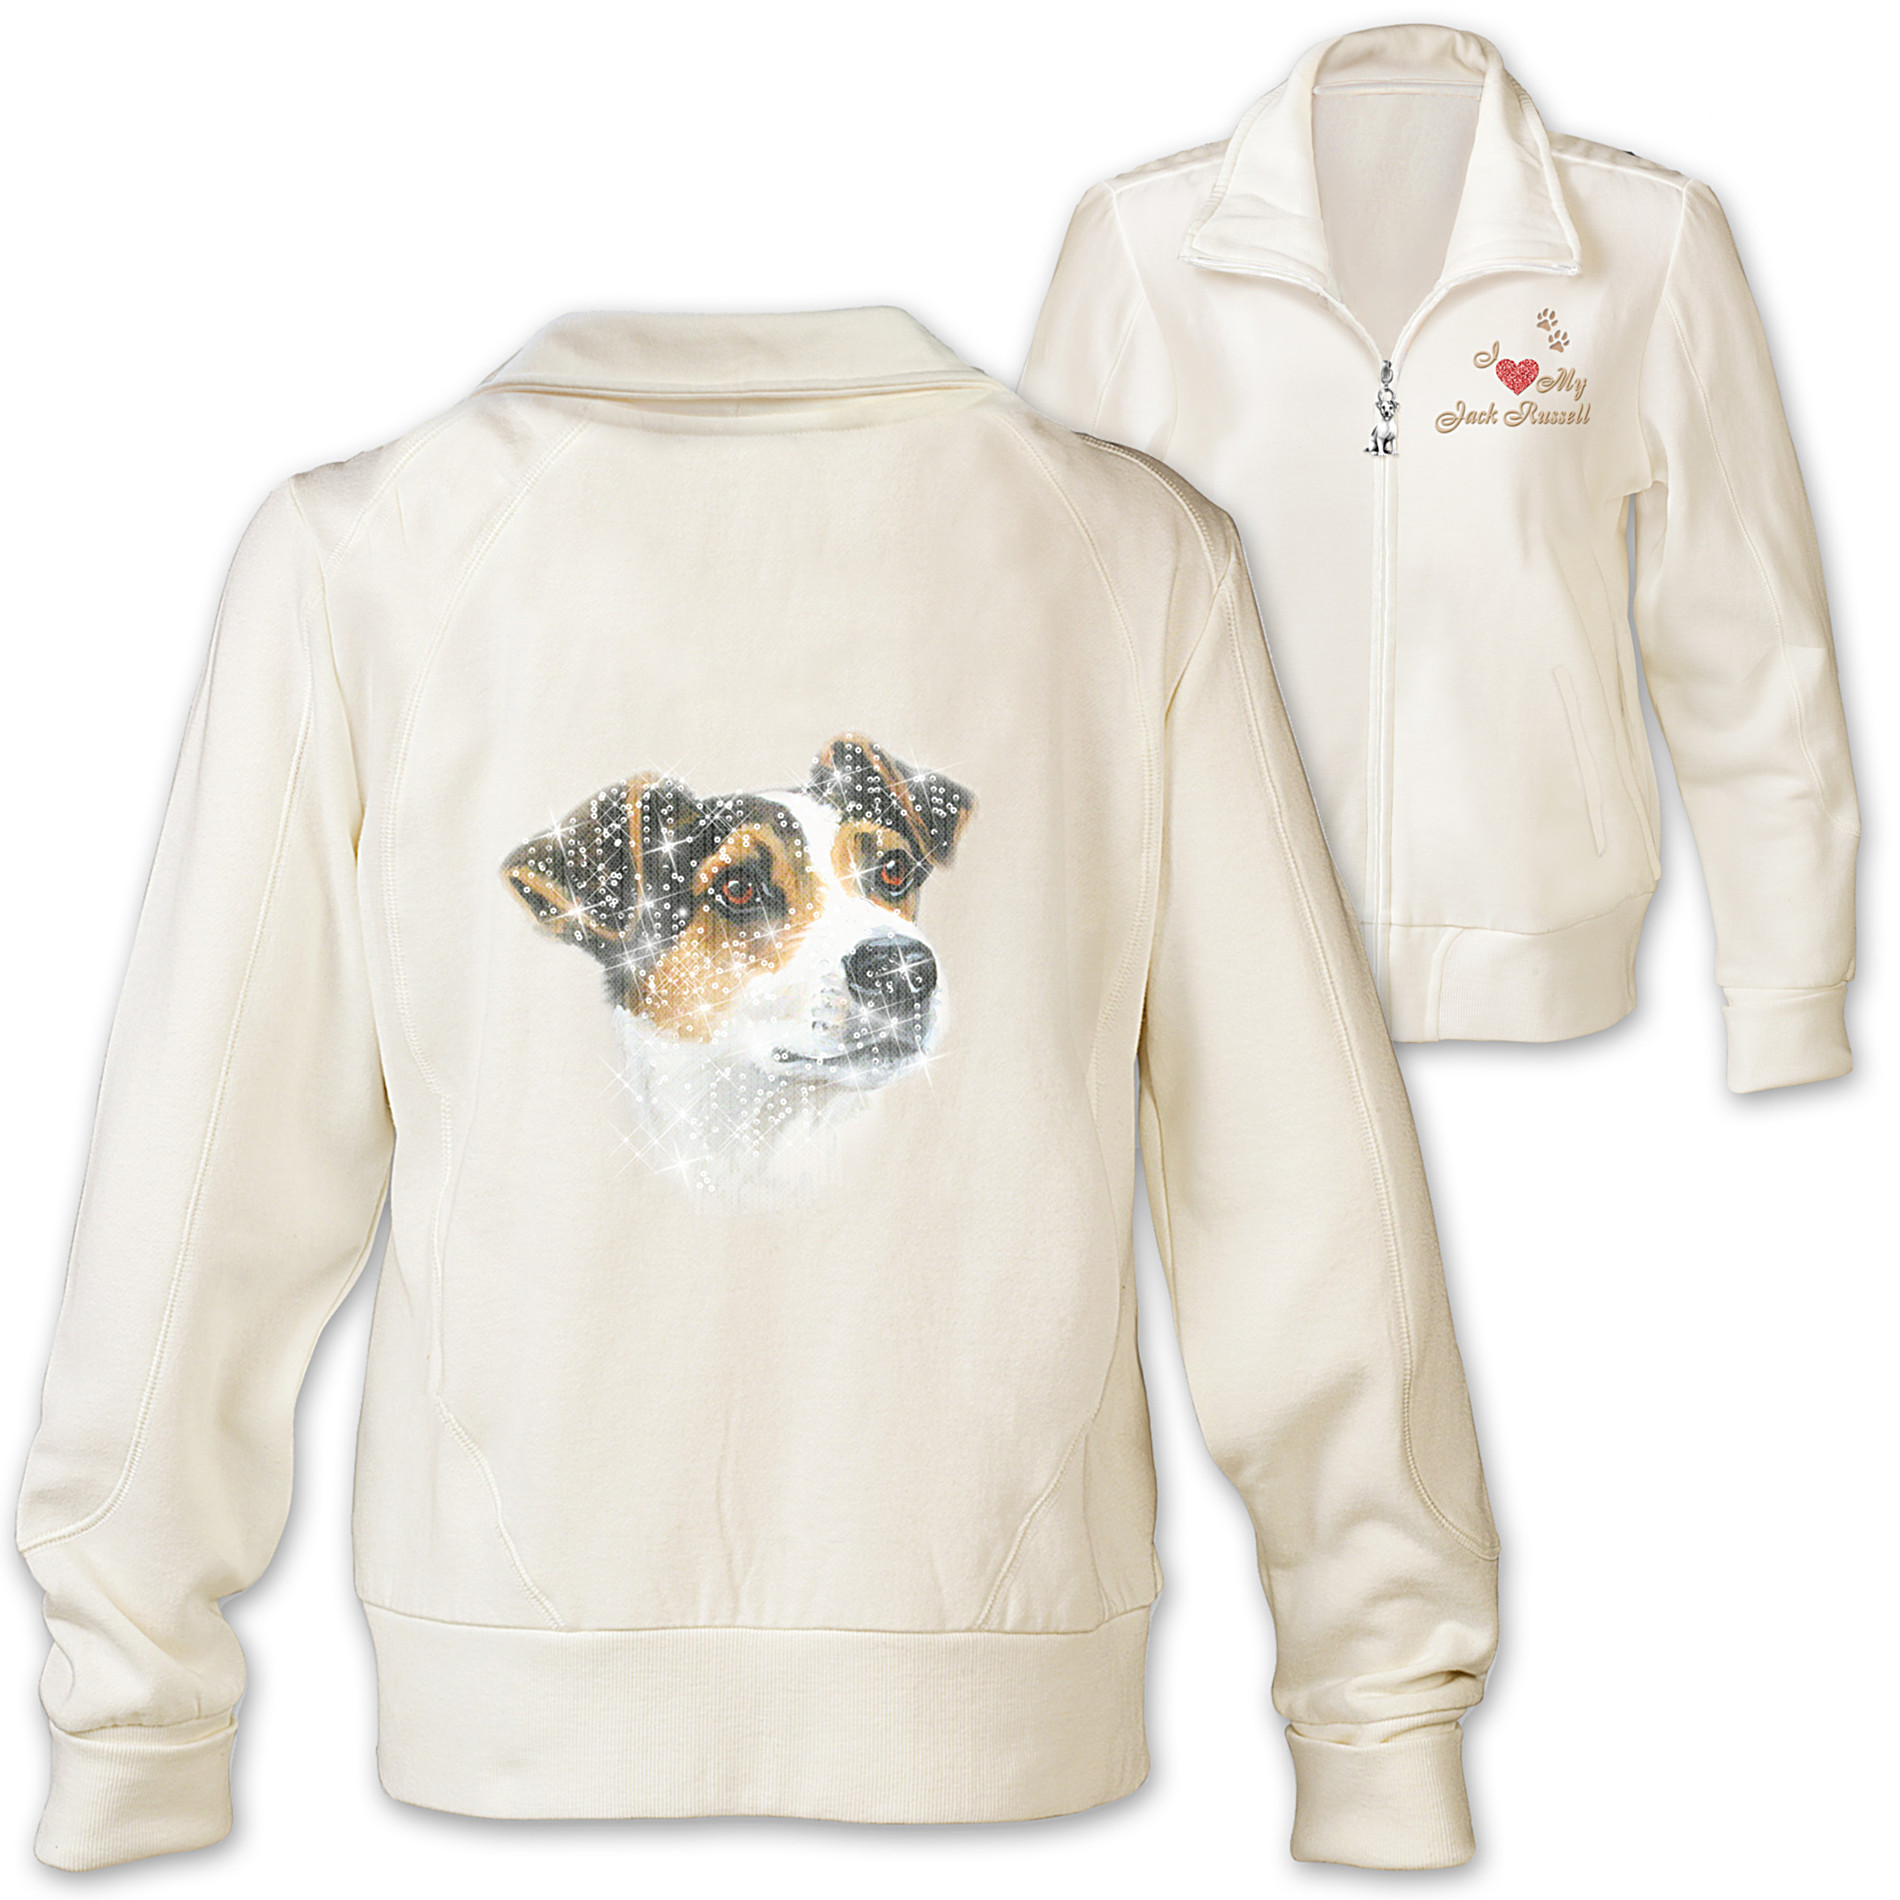 The Bradford Exchange Women's Jacket: Doggone Cute Jack Russell Women's Jacket at Sears.com